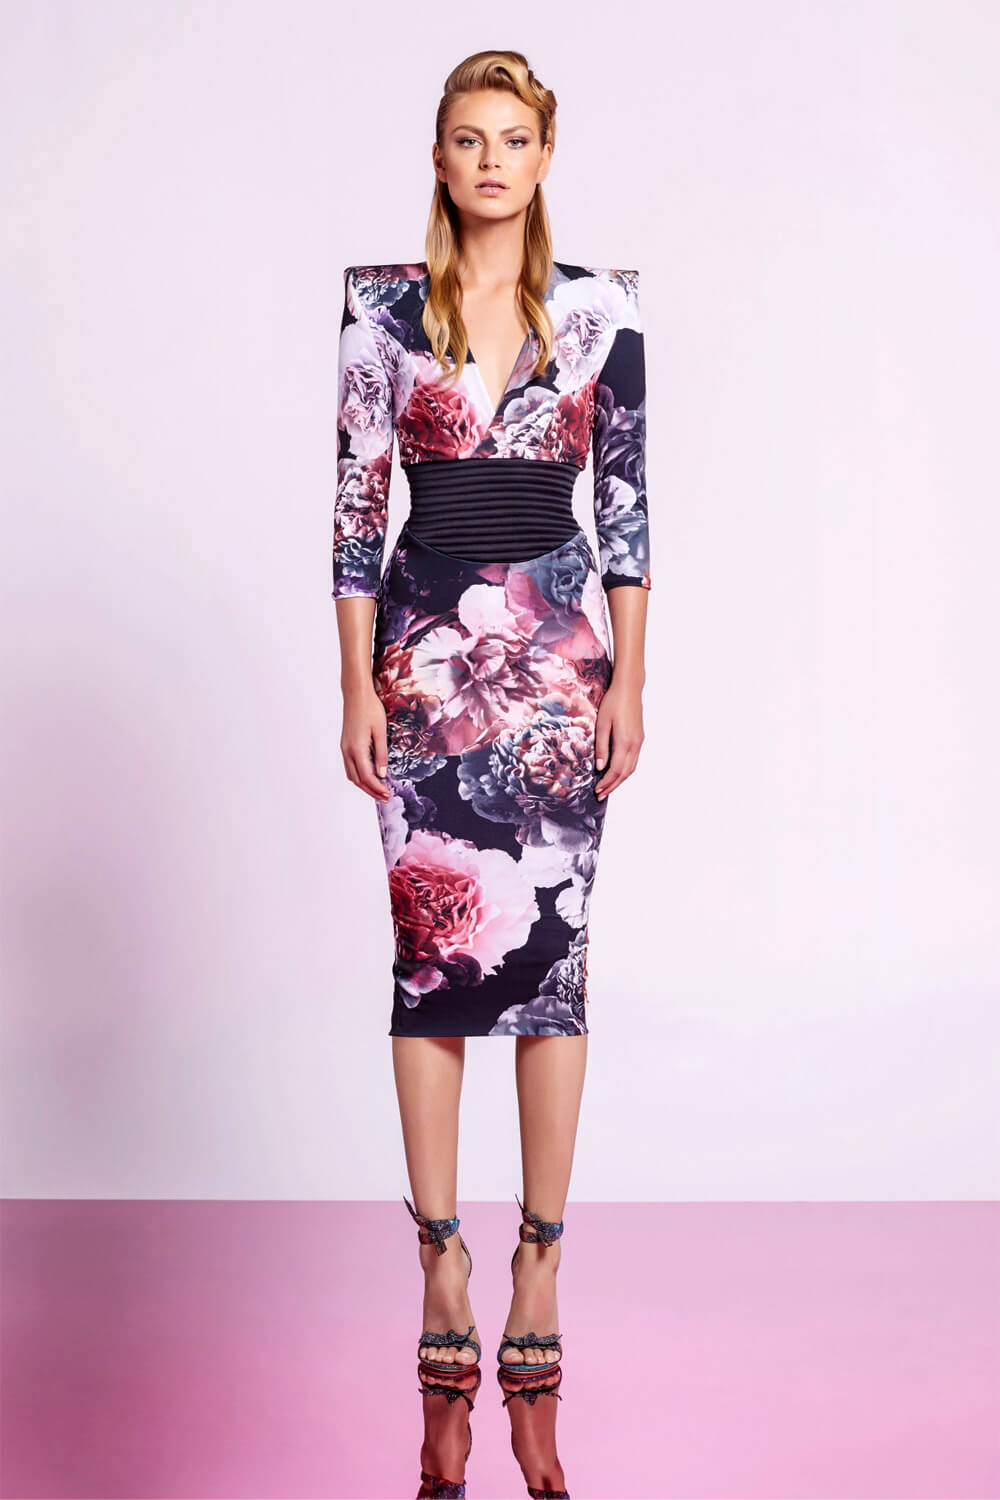 Zhivago Visible Life 2019 Collection